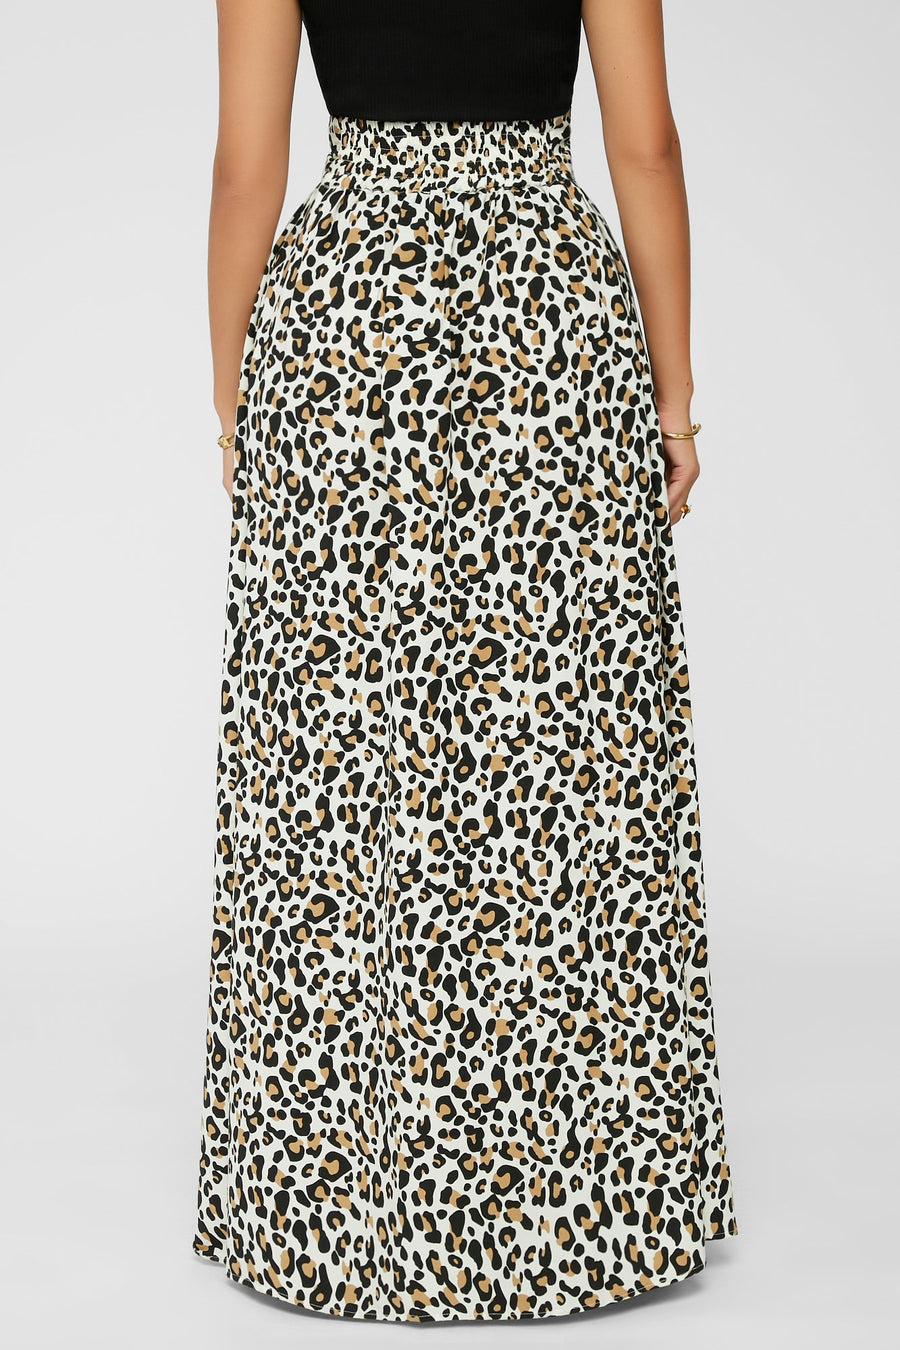 Pounce & Pose Maxi Skirt (Ivory) PRE-ORDER 6/26